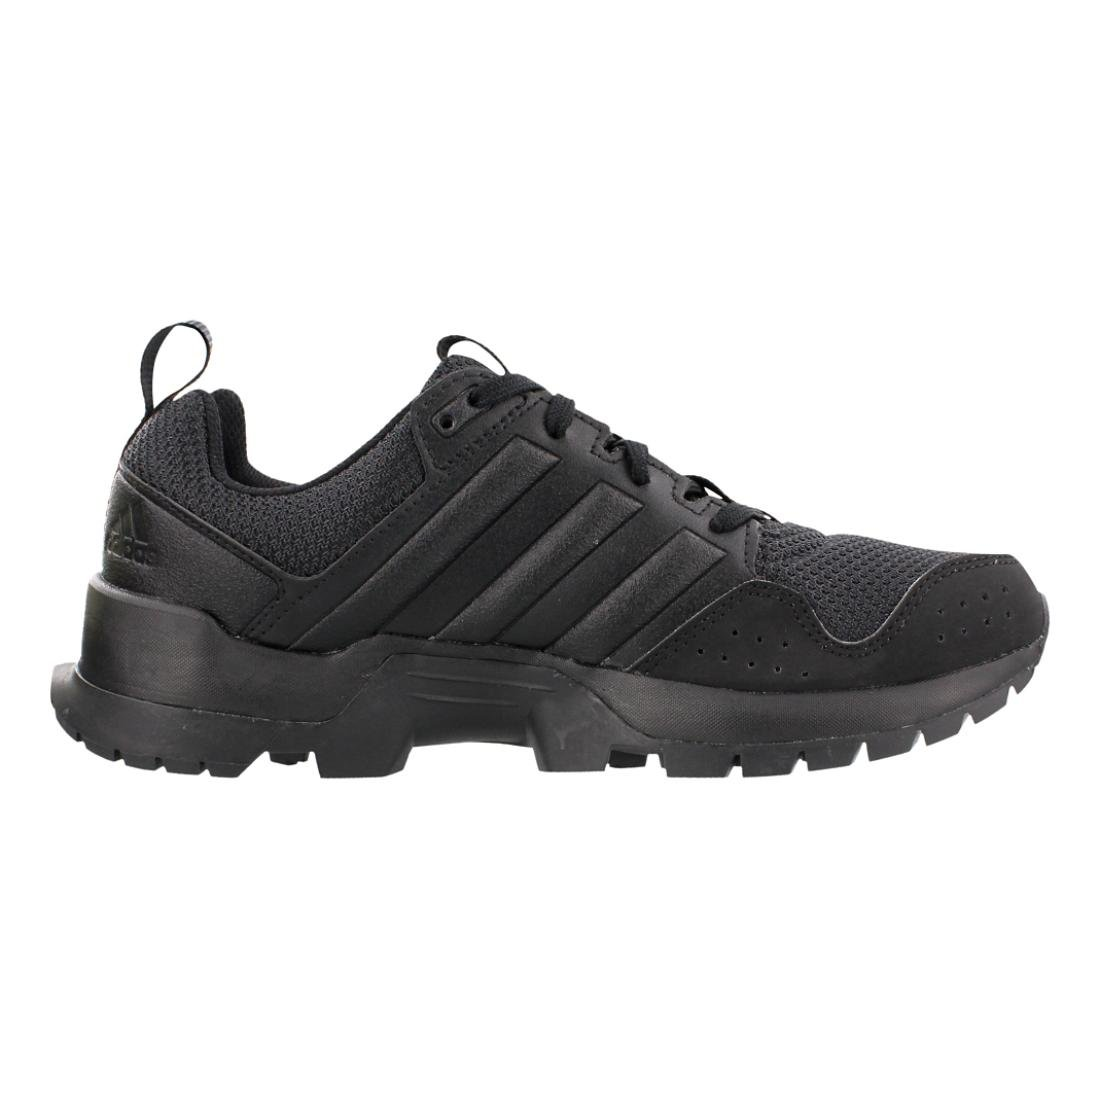 adidas outdoor Women's Gsg9 Trail Running Shoe B0116E6P8E 10 B(M) US|Black/Black/Black